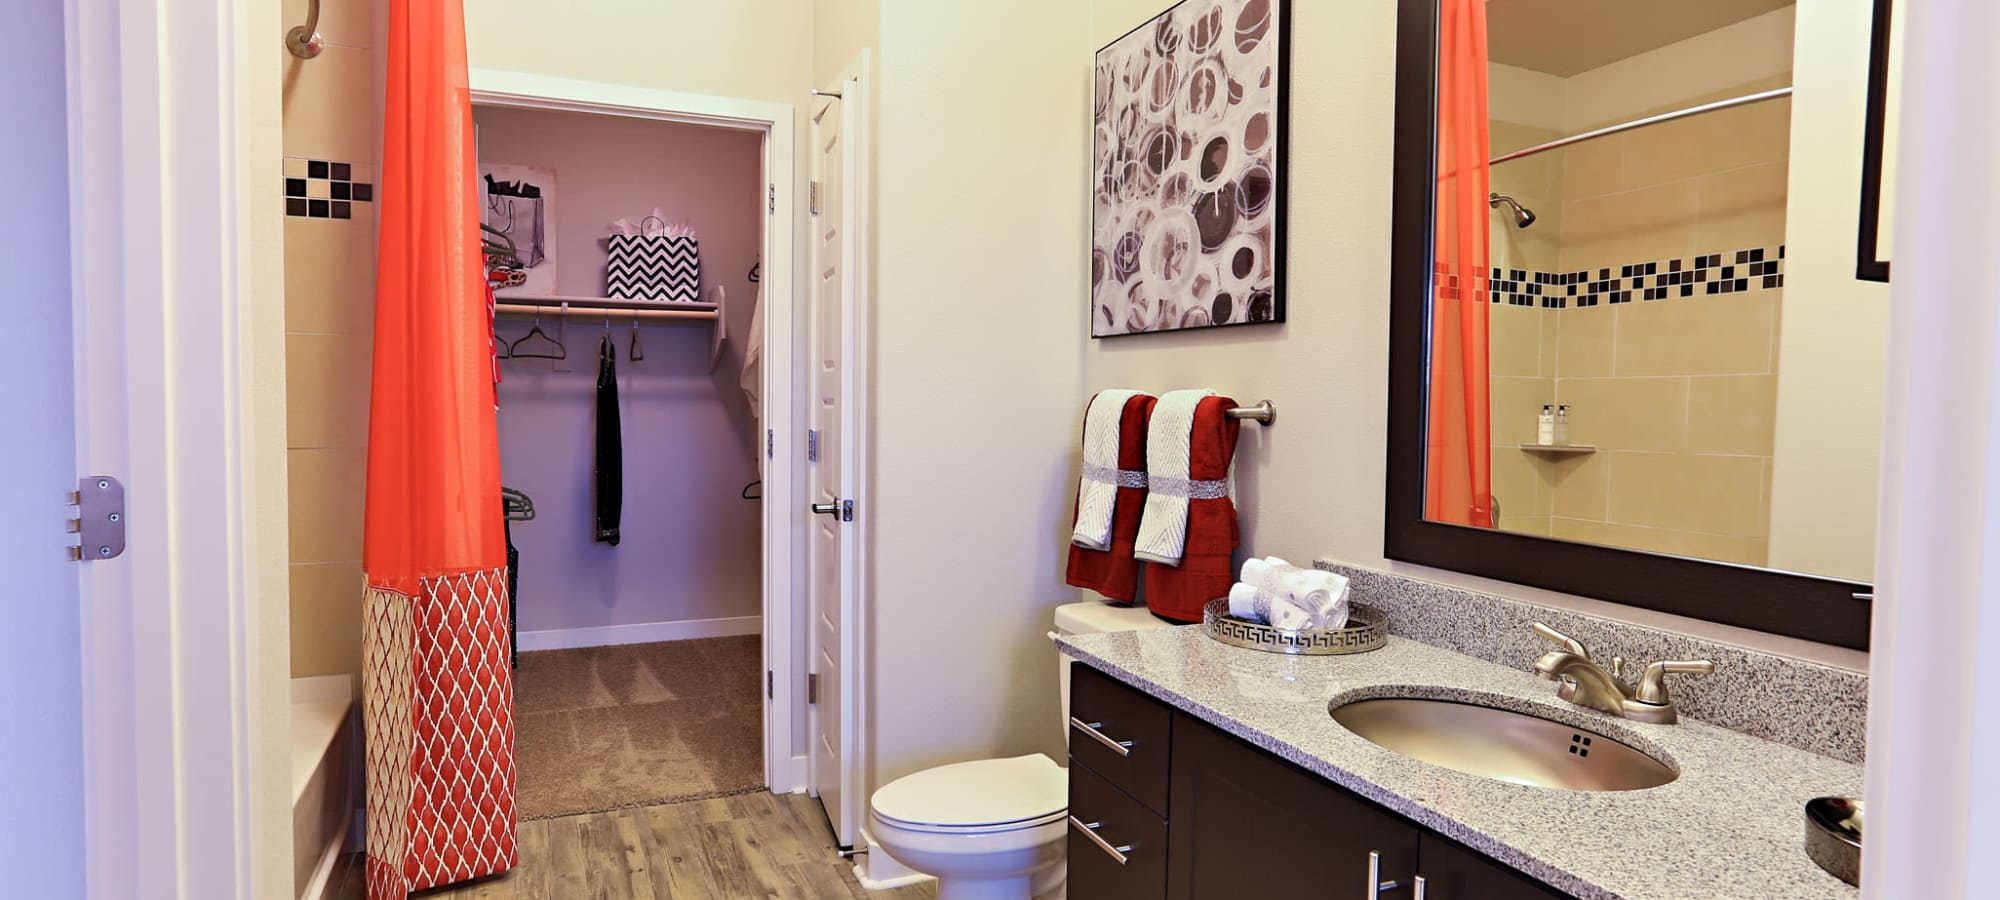 Large bathroom with adjacent walk-in closet in model home at The Hyve in Tempe, Arizona